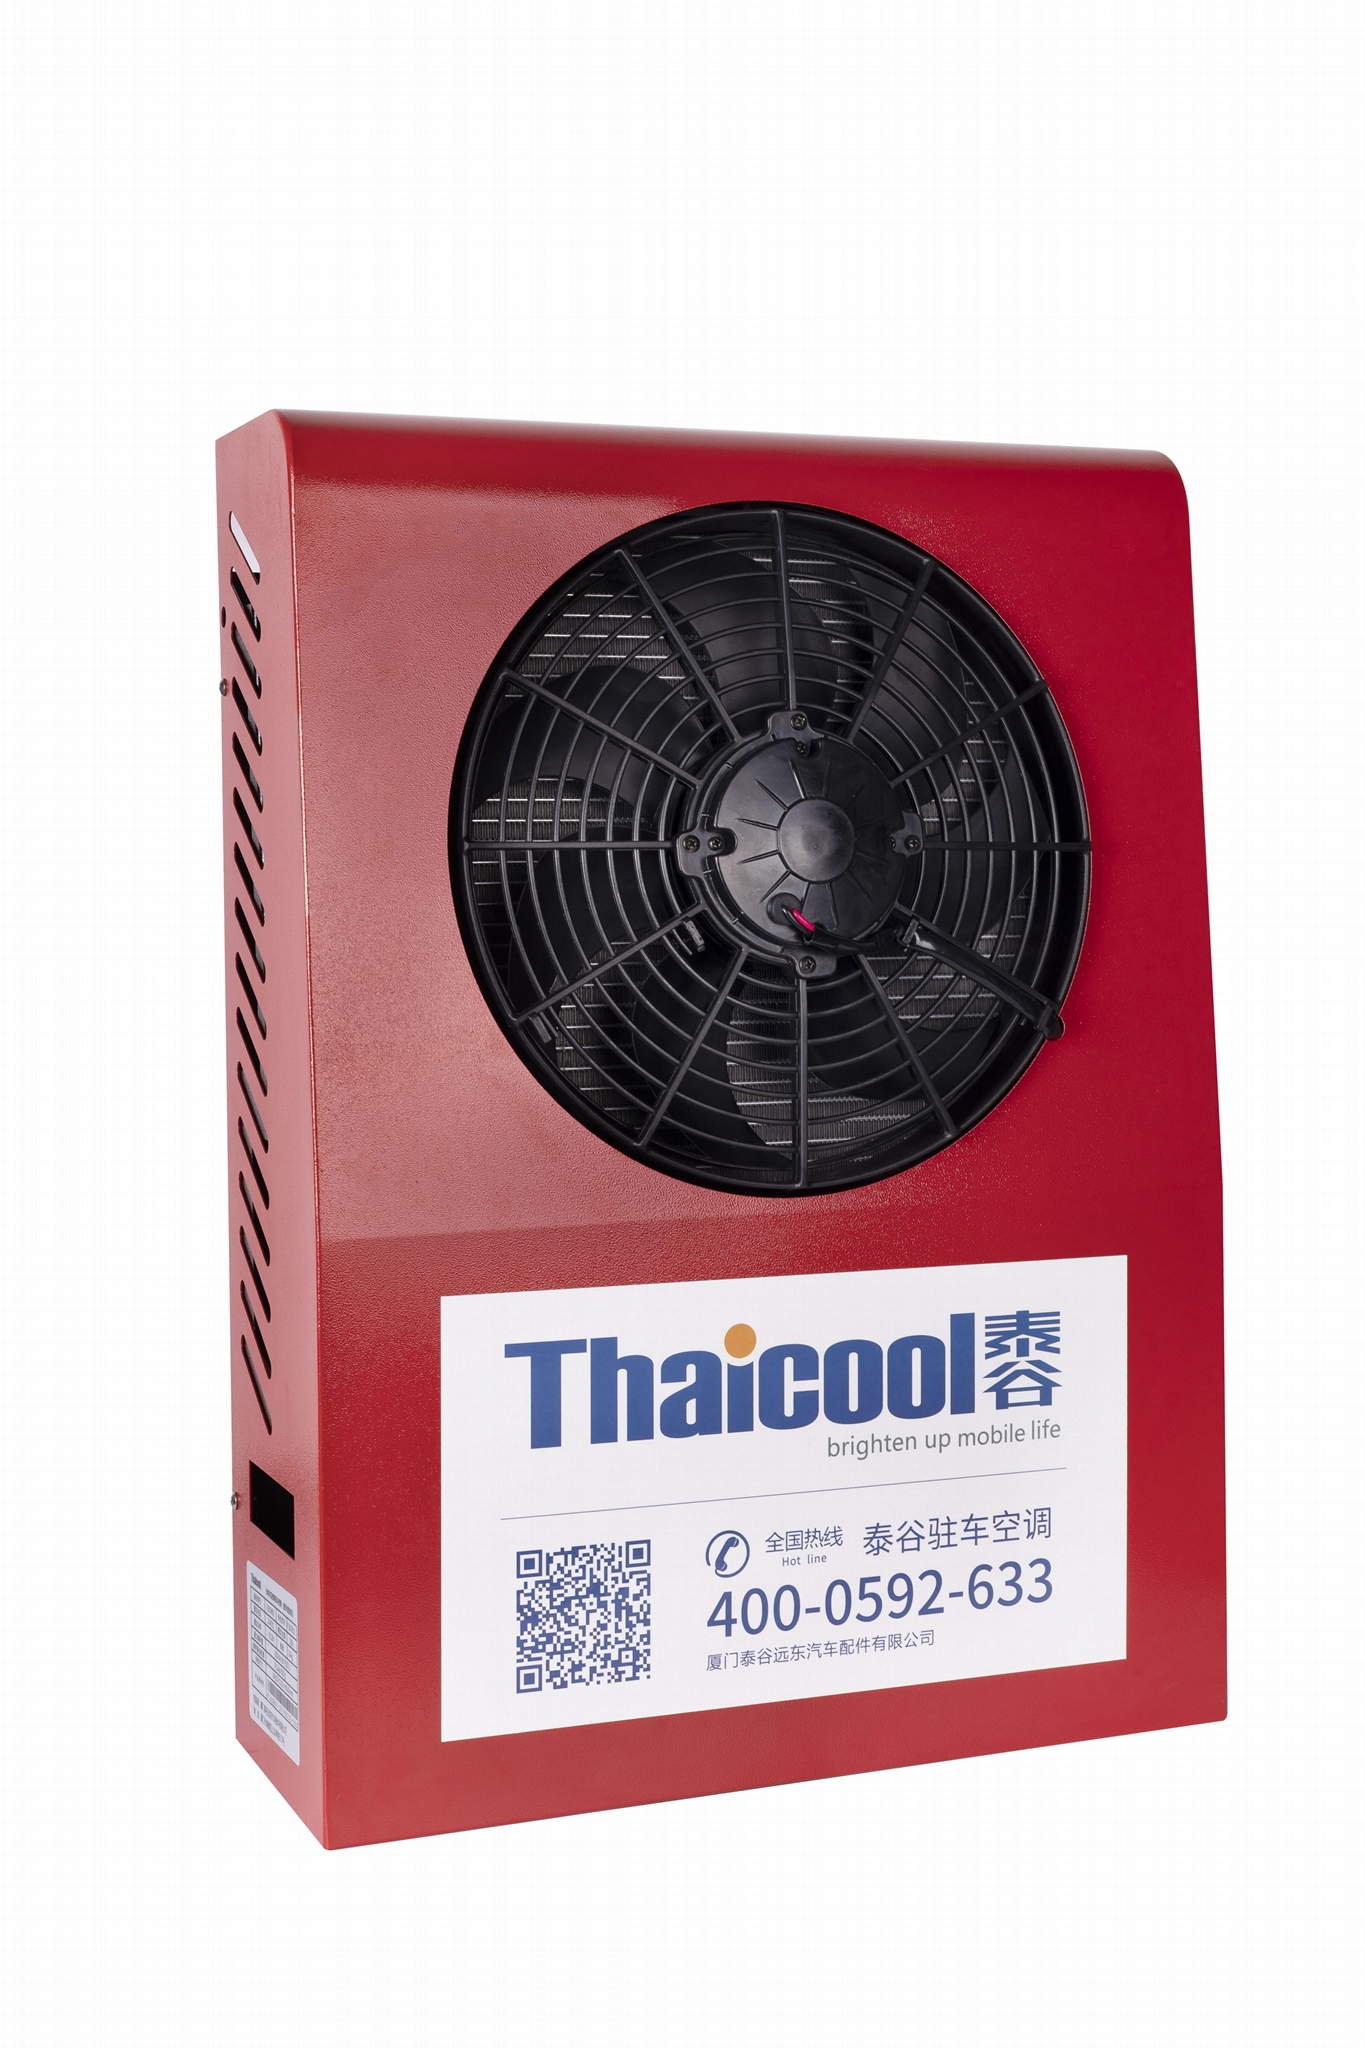 Truck air conditioning system electric parking cooler  2